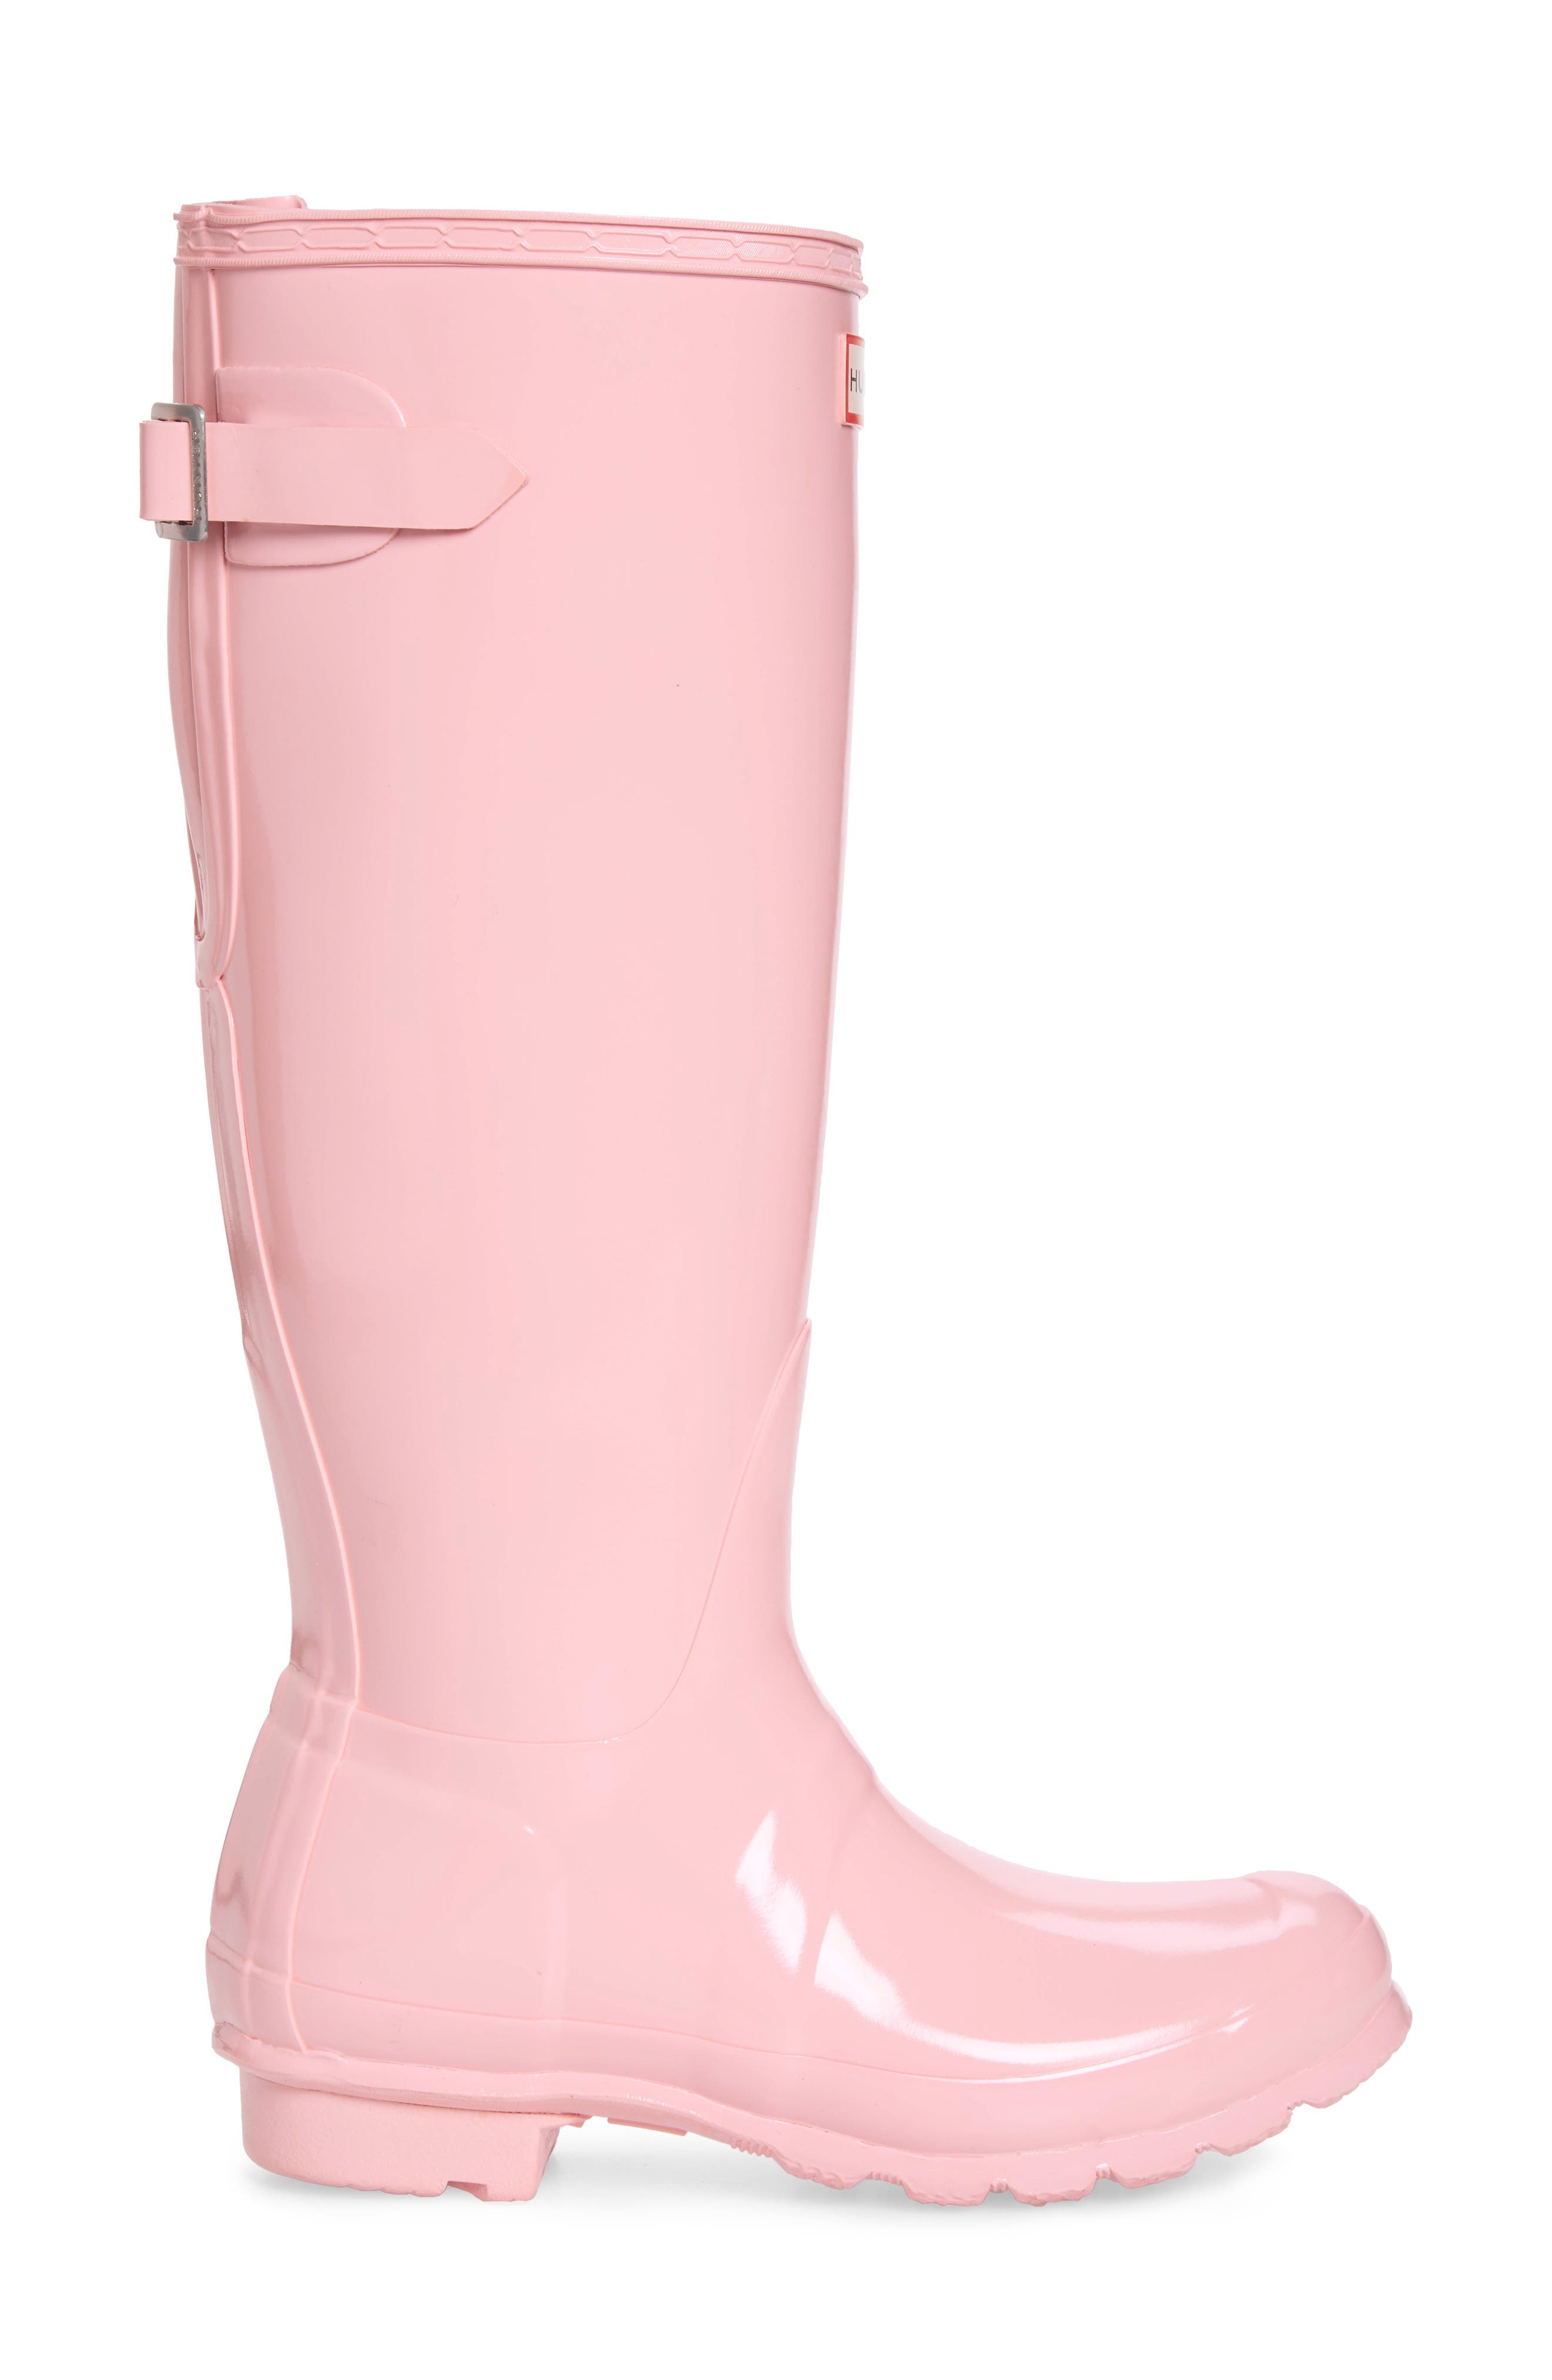 HUNTER, Adjustable Back Gloss Waterproof Rain Boot, Alternate thumbnail 3, color, CANDY FLOSS RUBBER